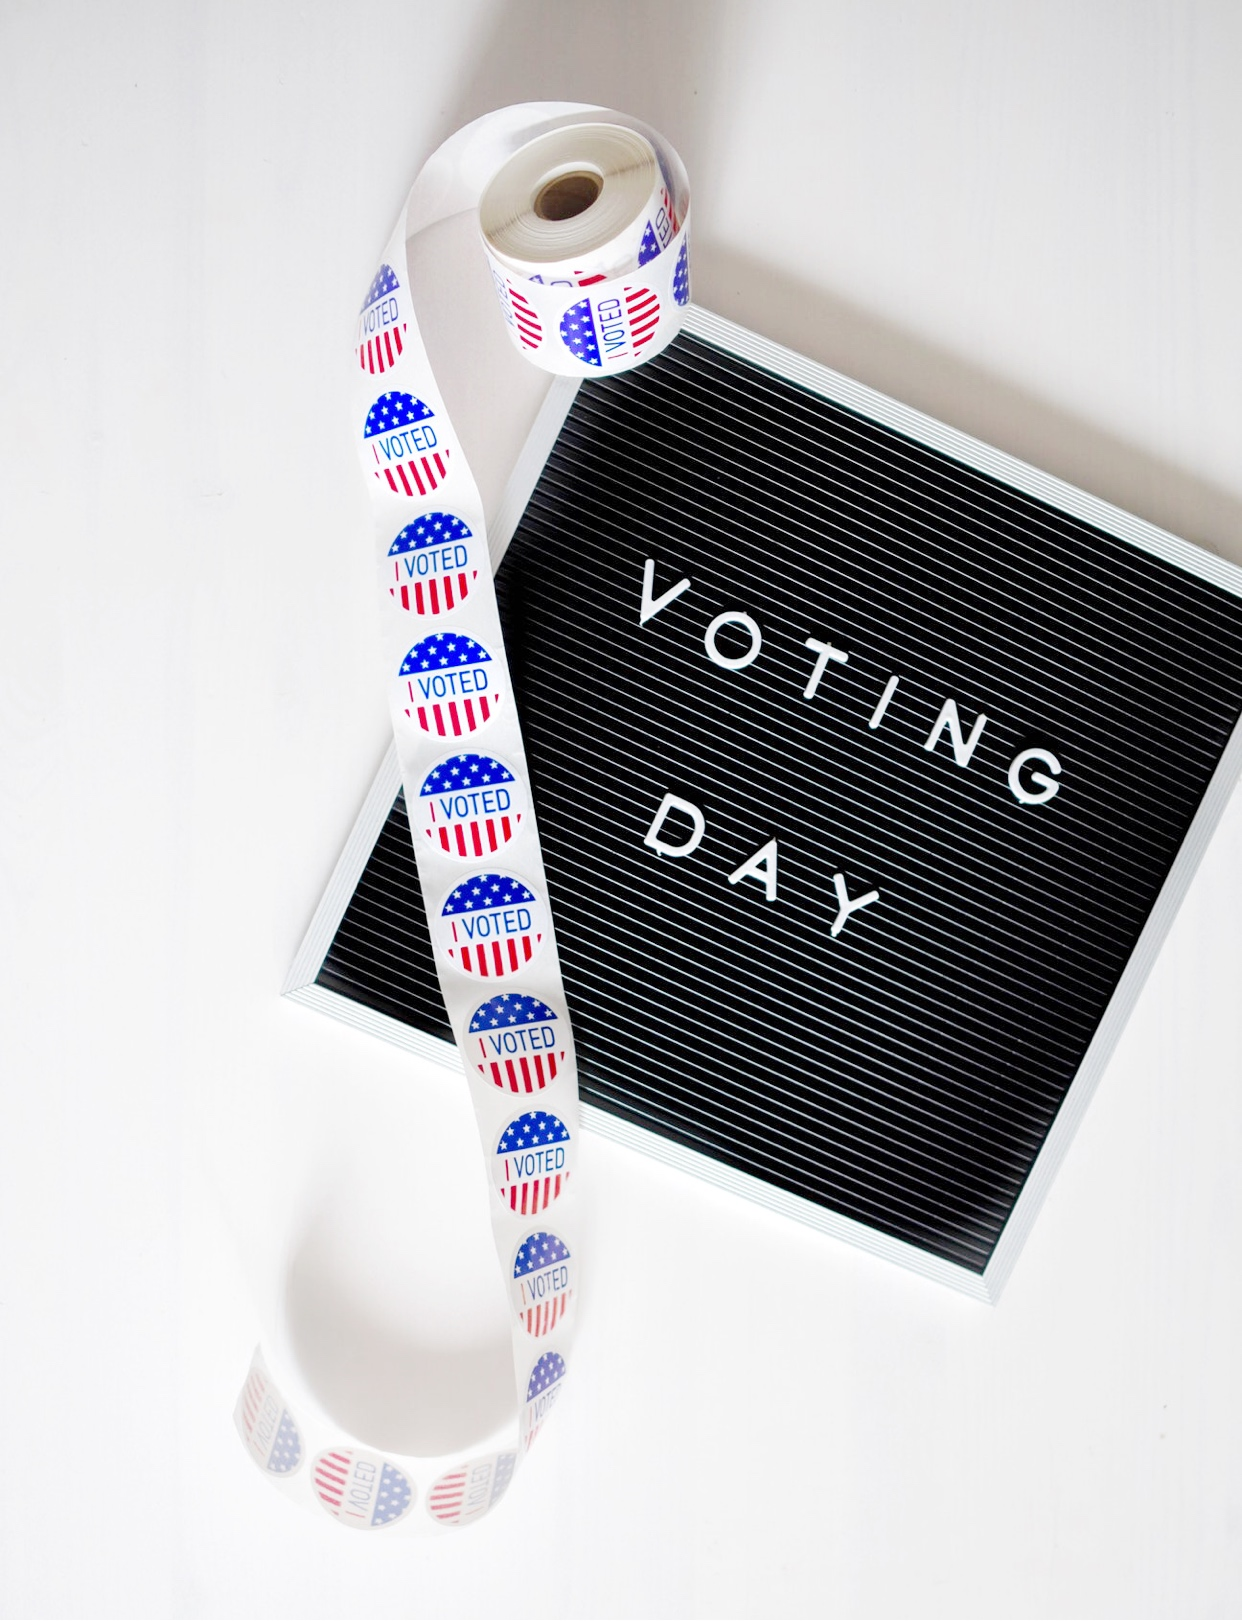 Voting Day 2018